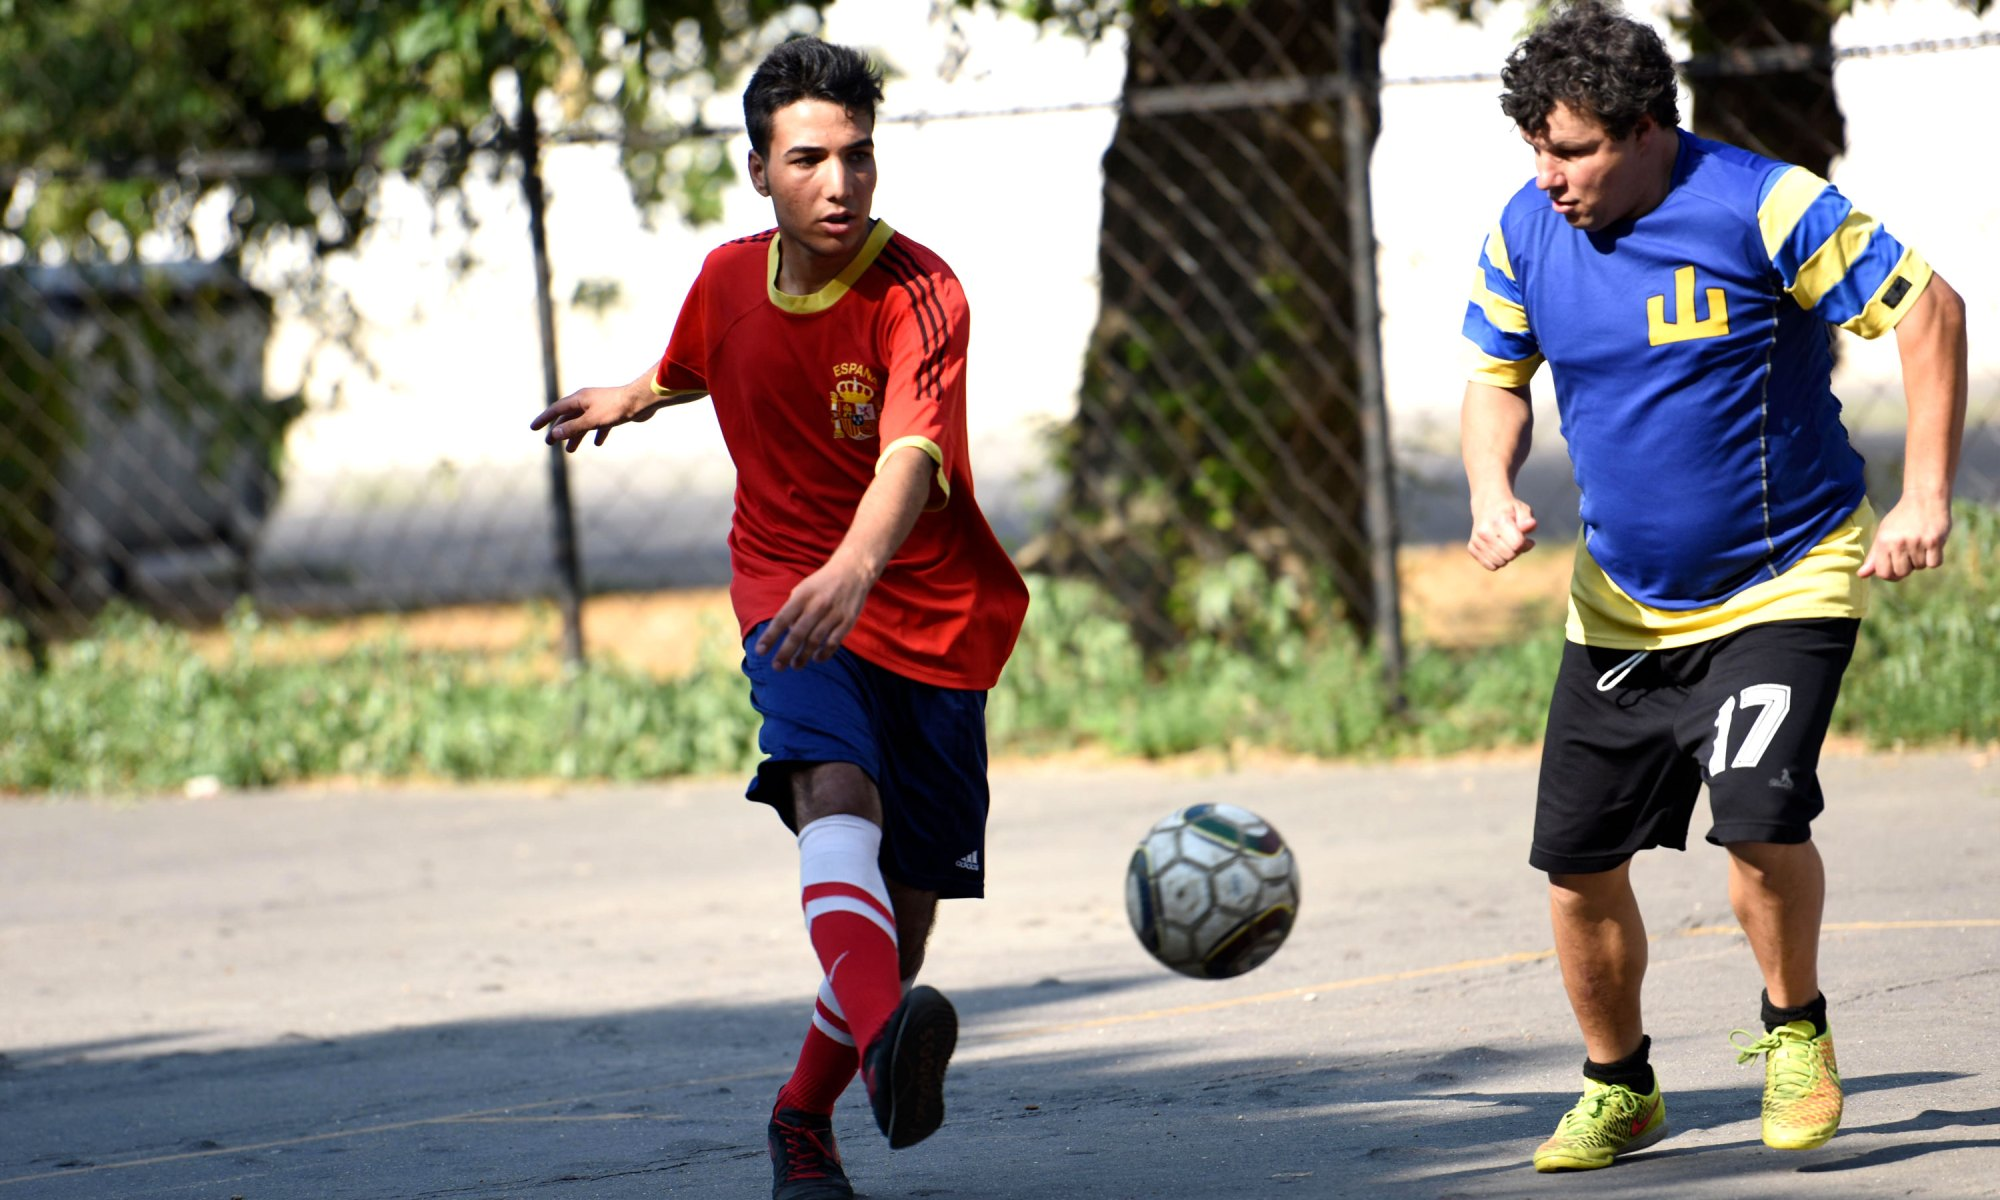 Refugees playing football